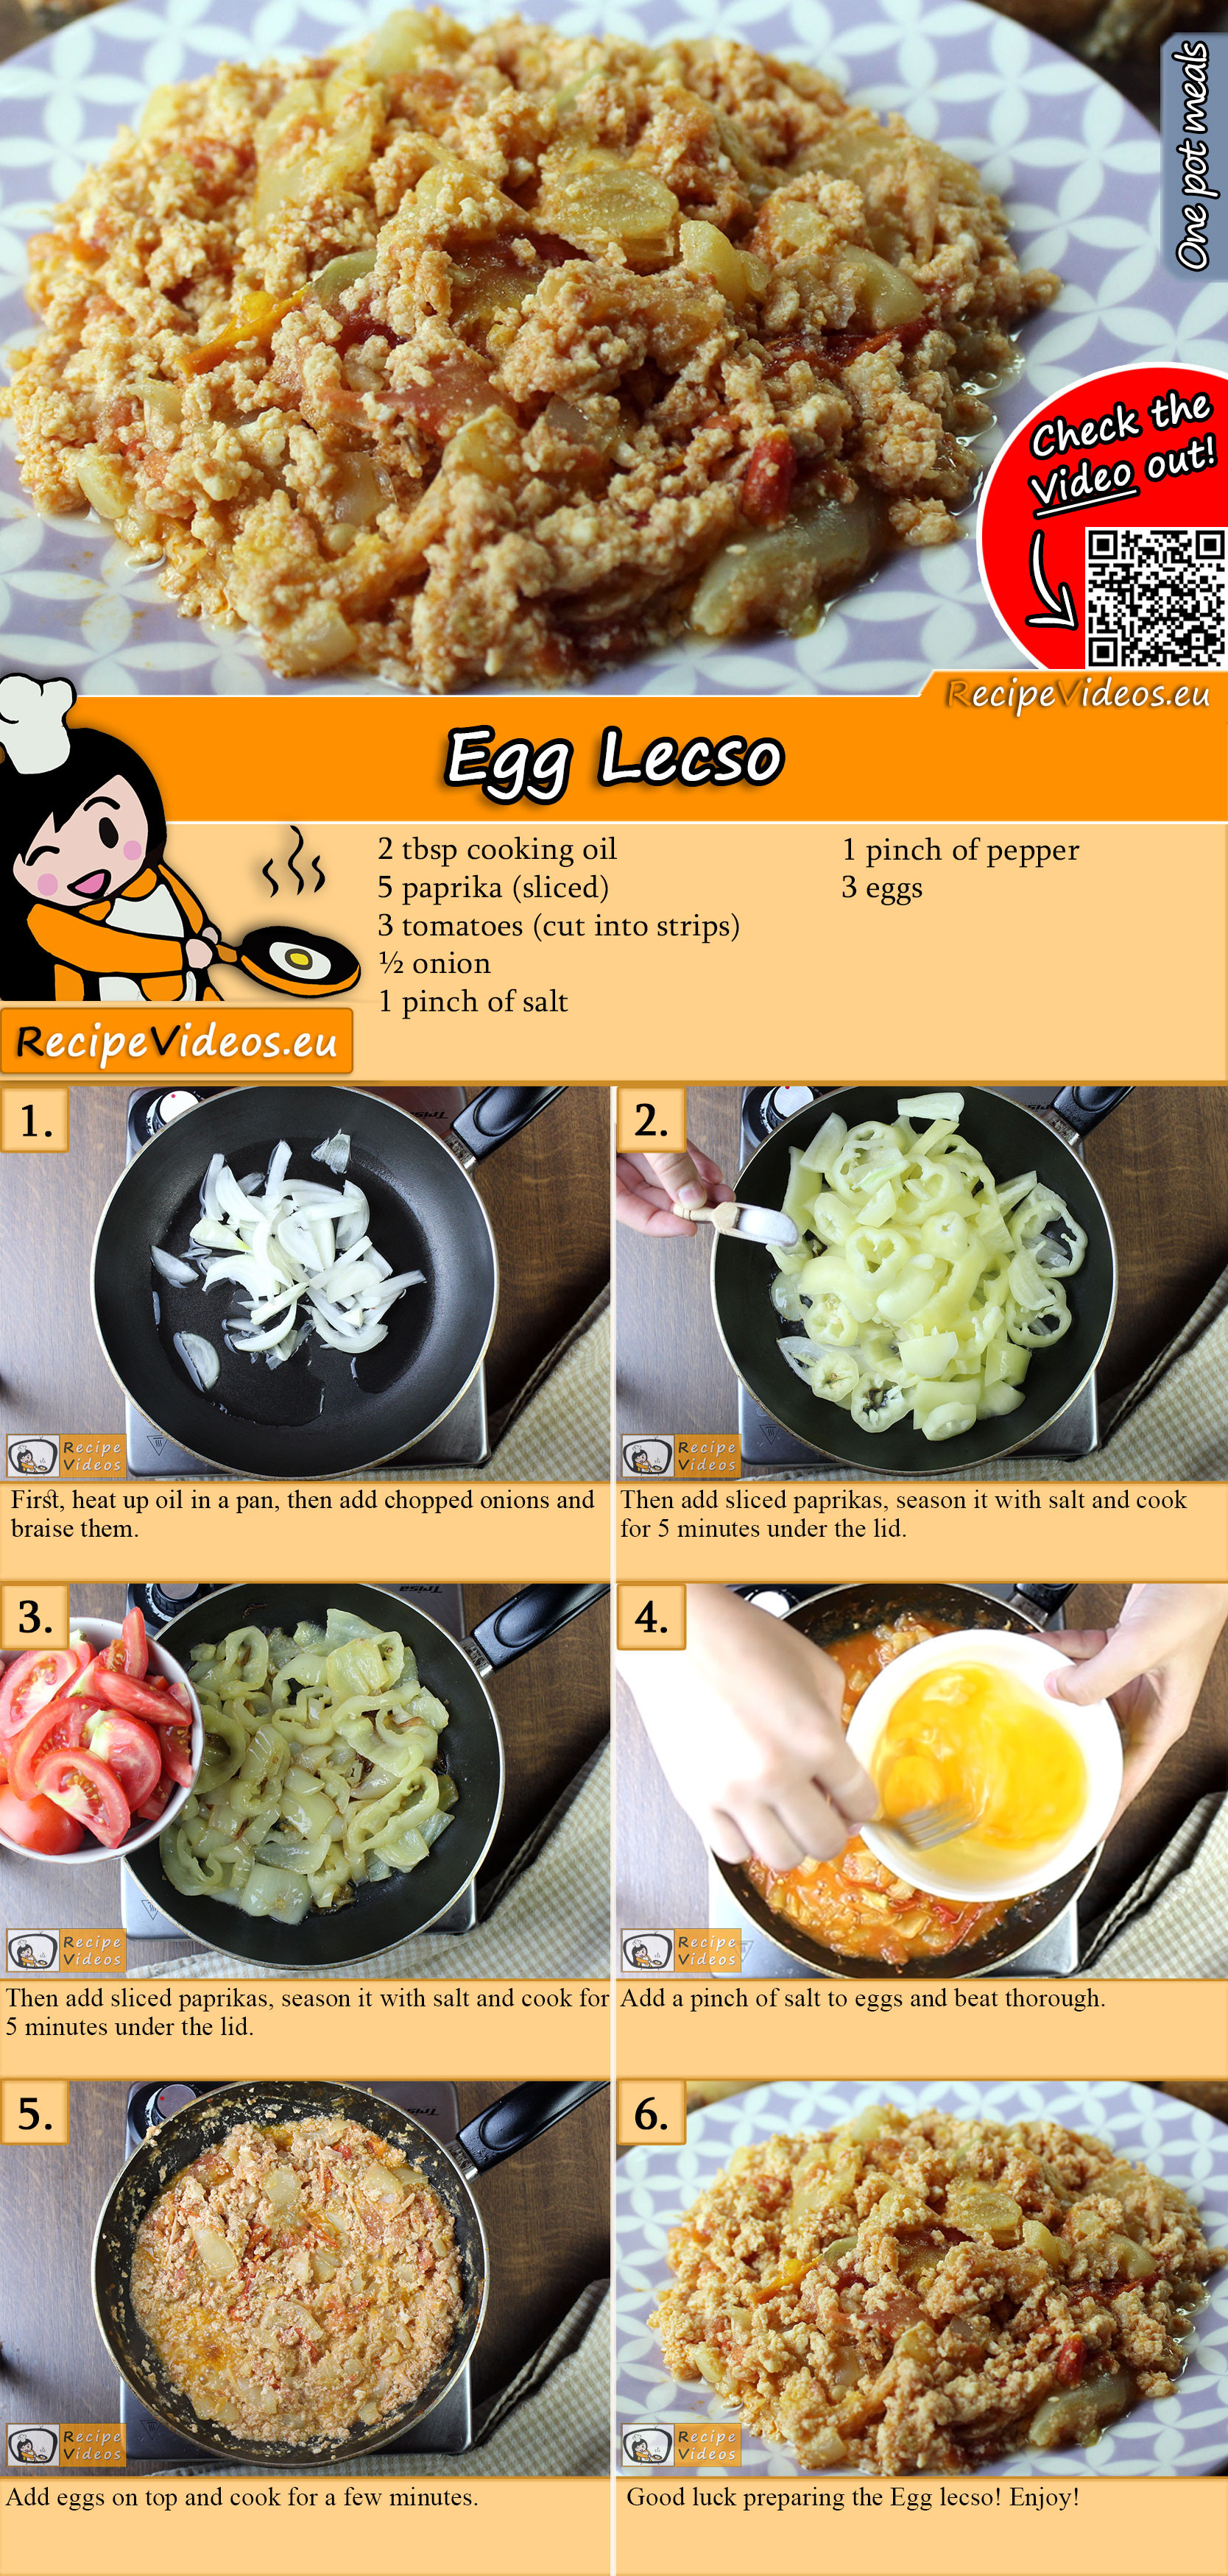 Egg Lecso recipe with video